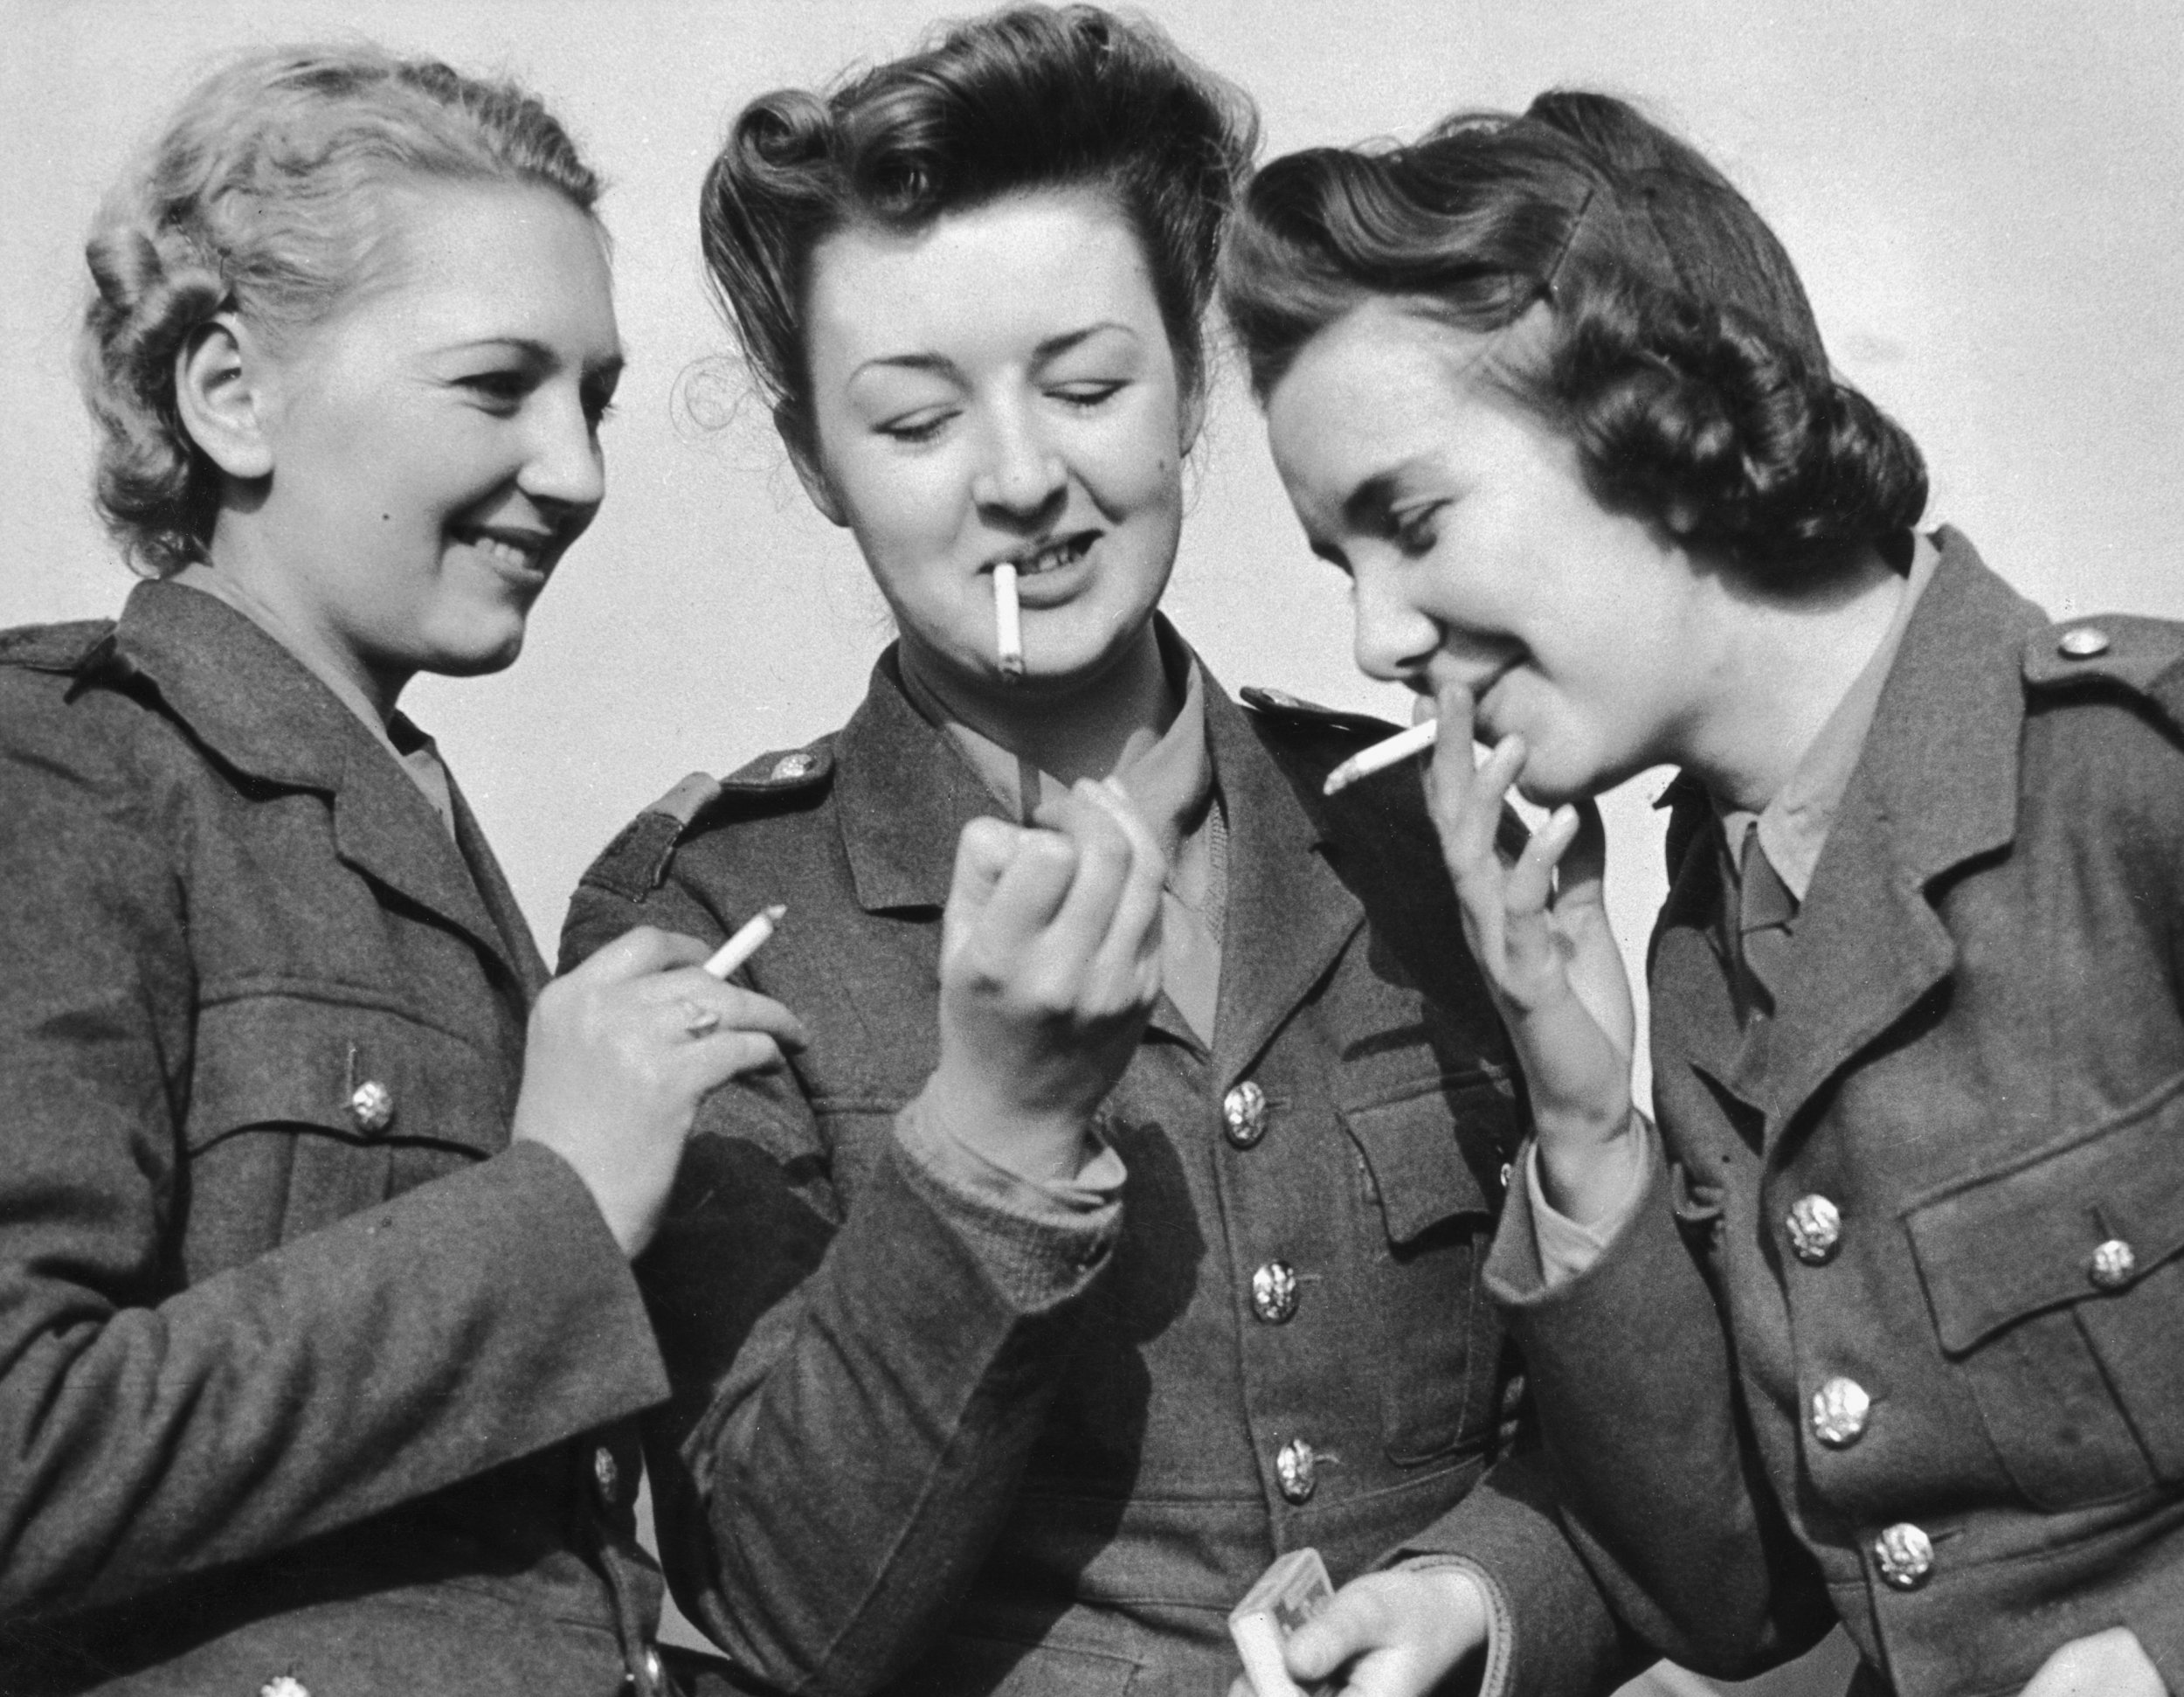 What millennials can learn from the Greatest Generation